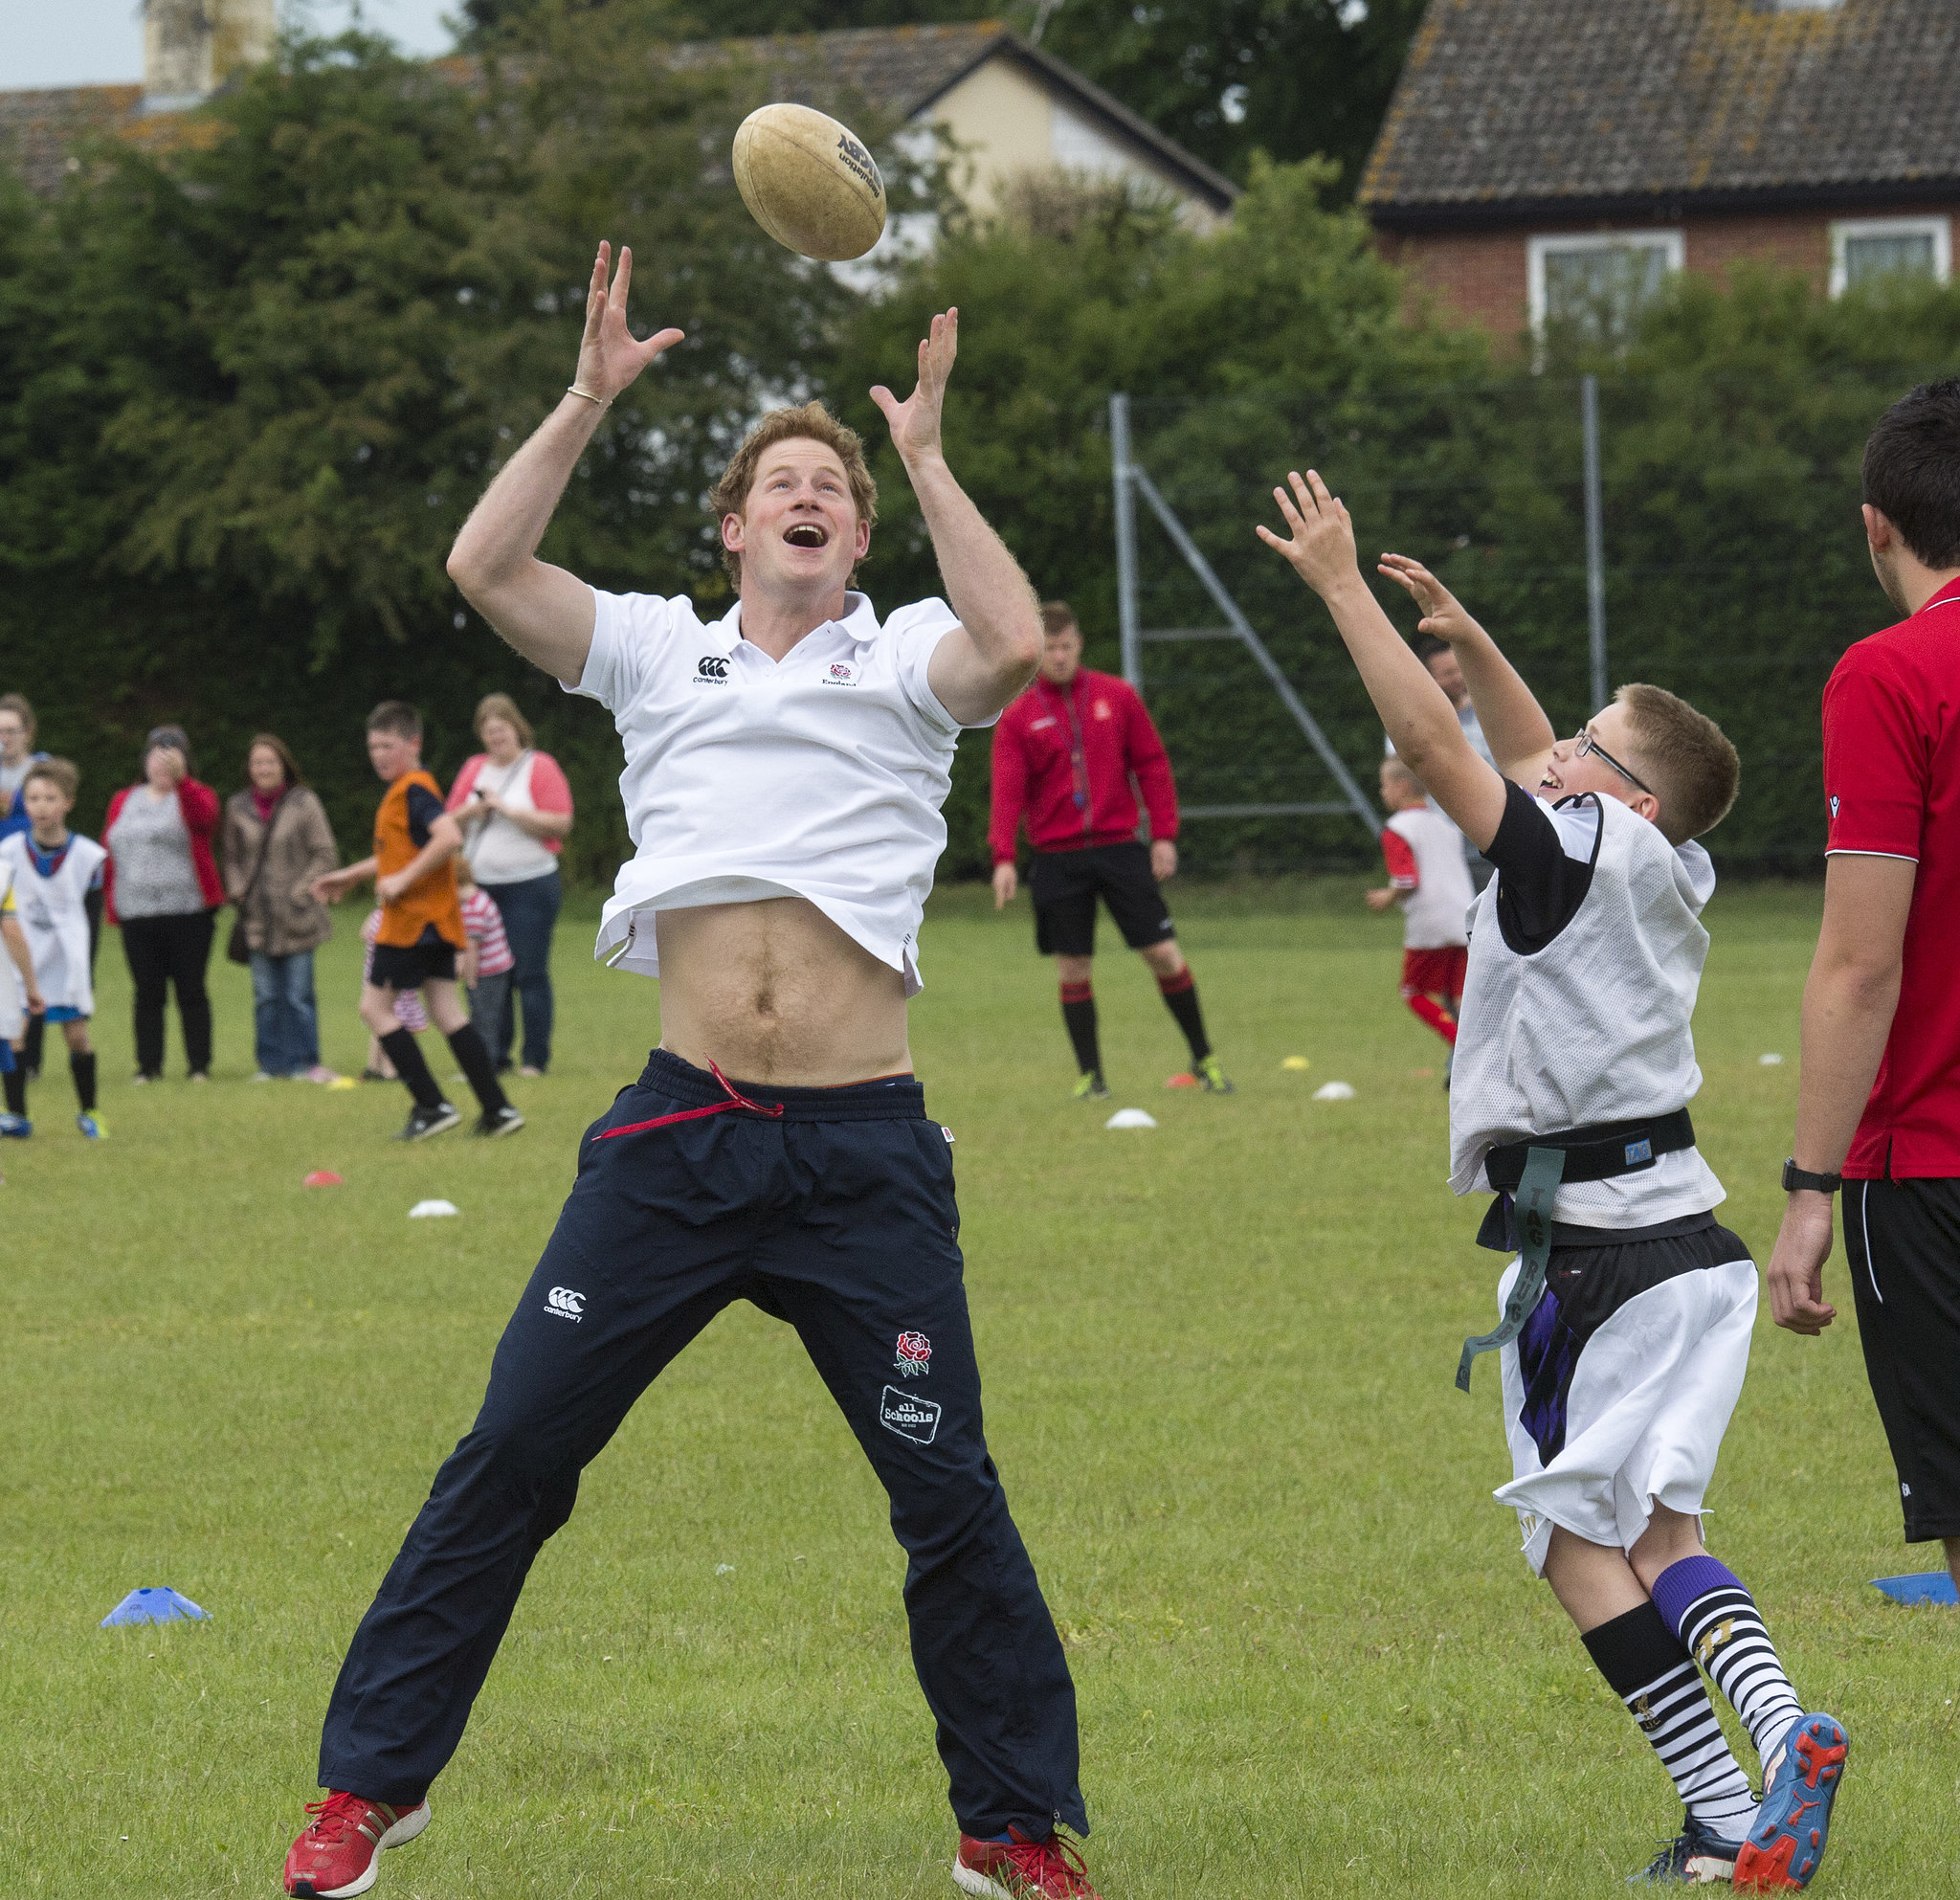 Newly single Prince Harry gave everyone a glance at his royal abs when he took part in an activity day in the Suffolk region of England.